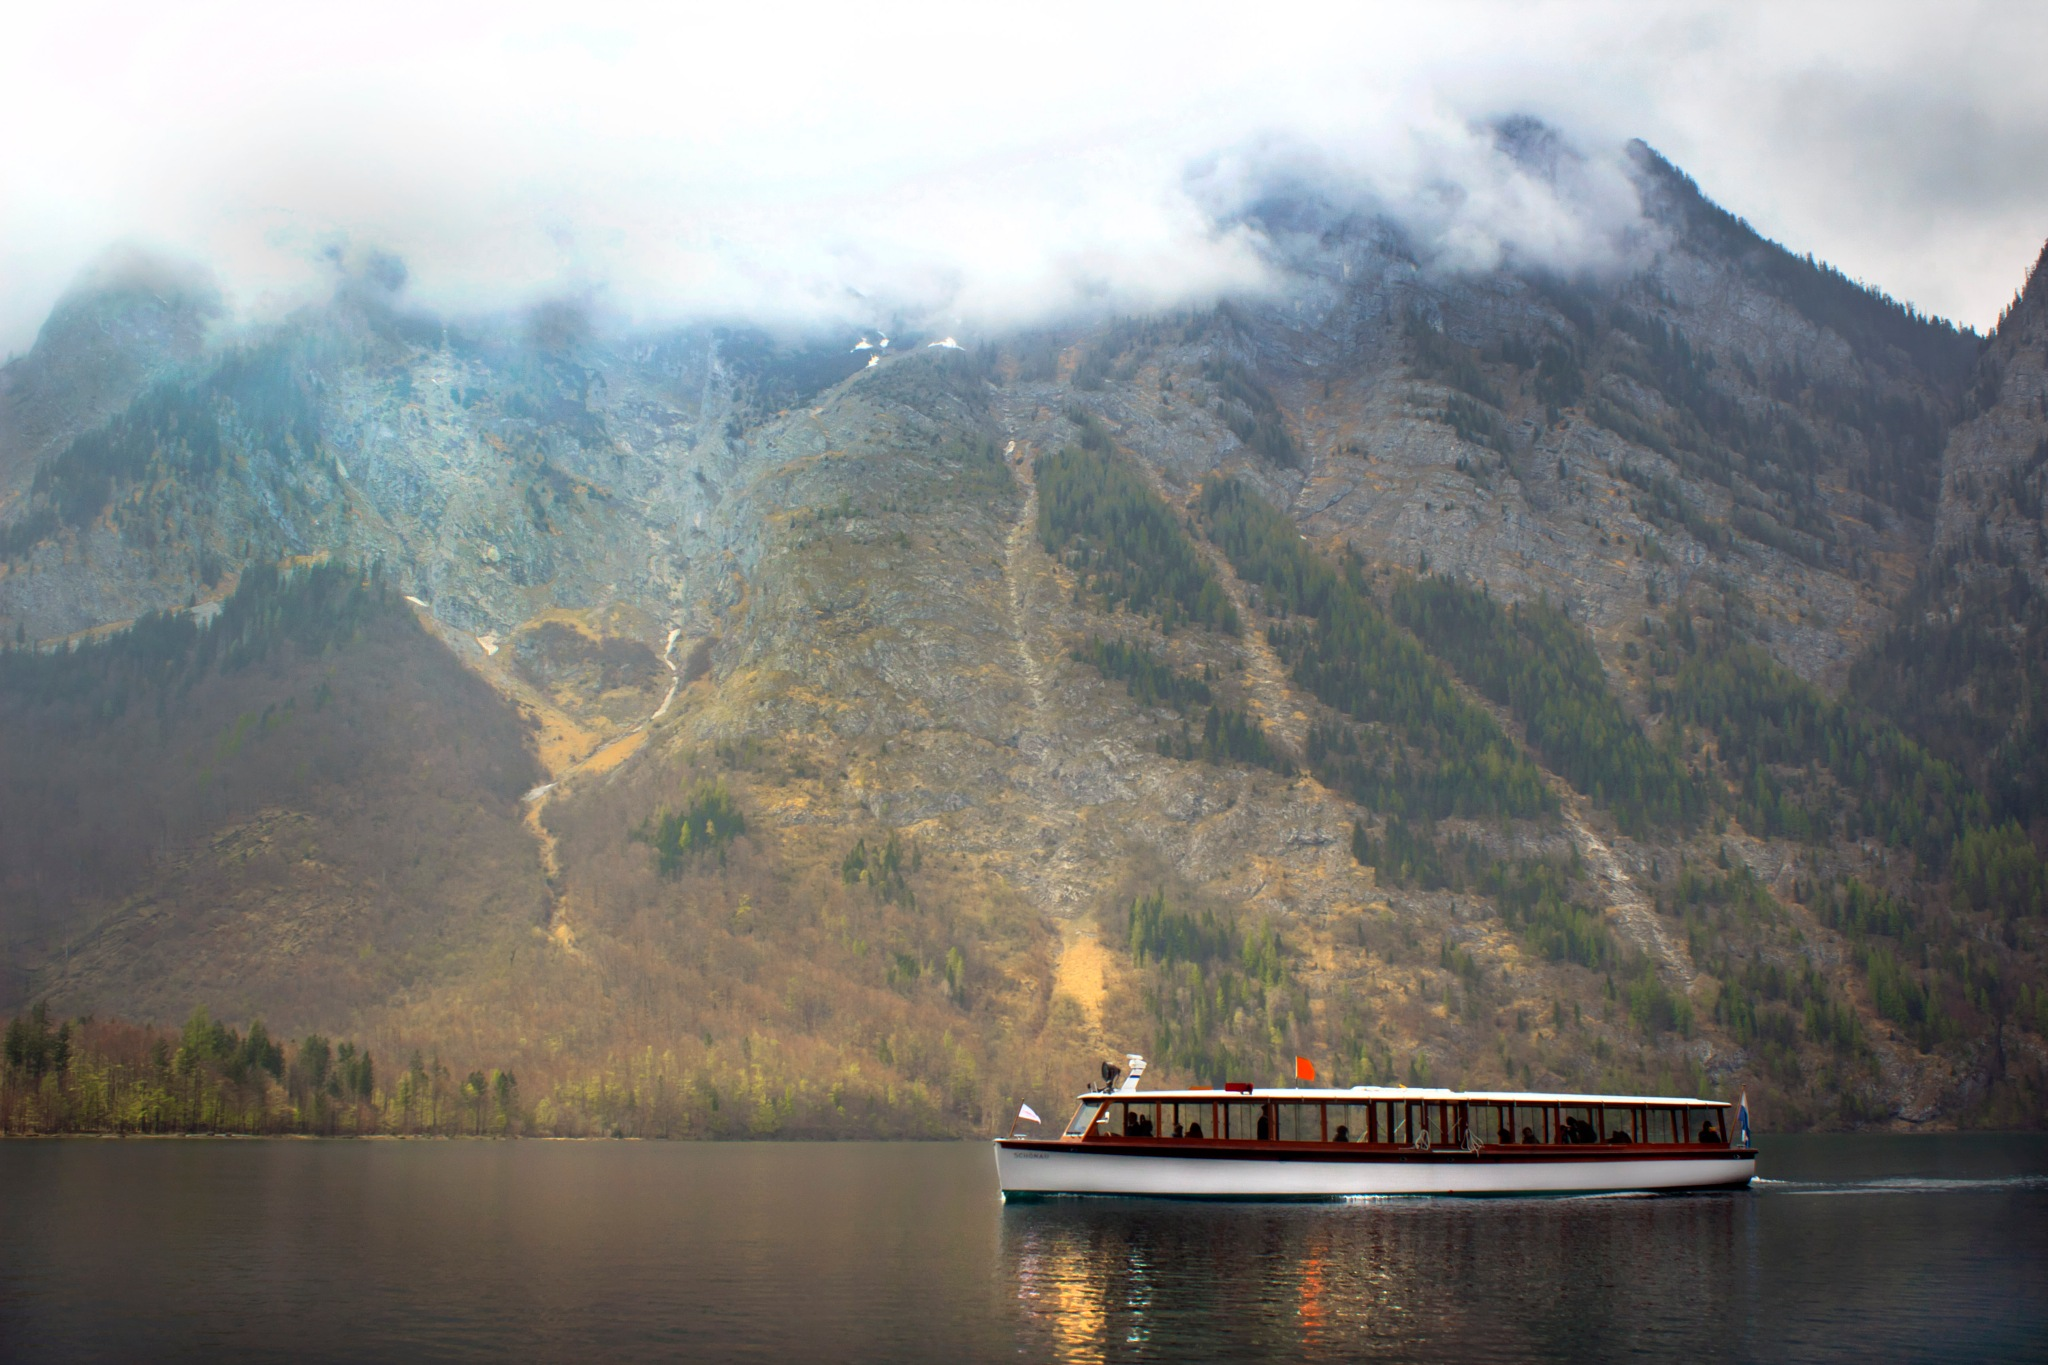 Boating on the Konigssee by dave.skorupski